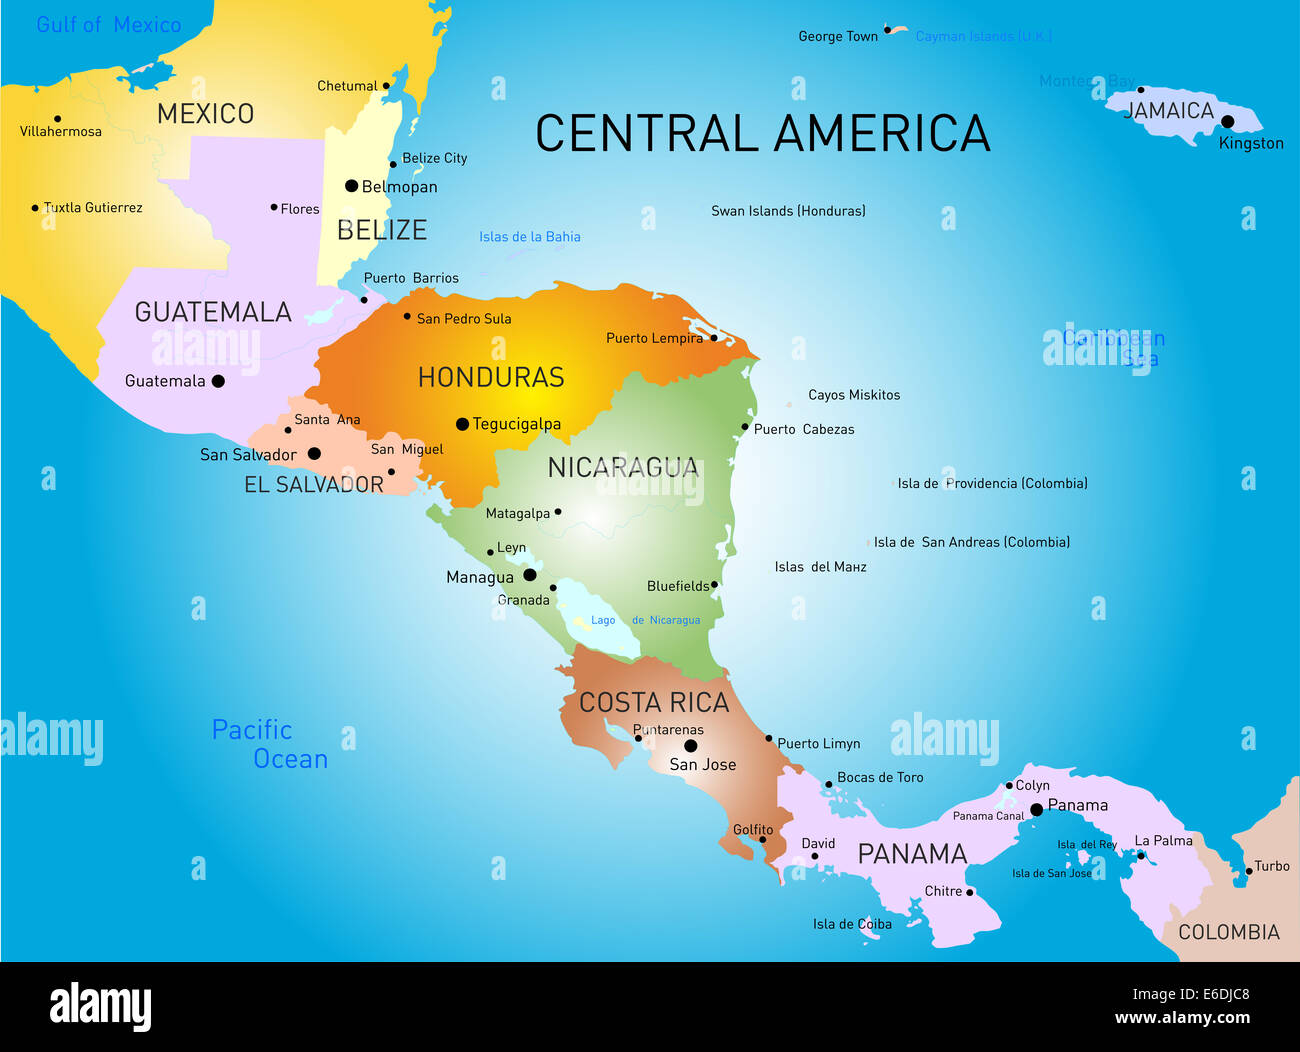 central america map Stock Photo: 72829240 - Alamy